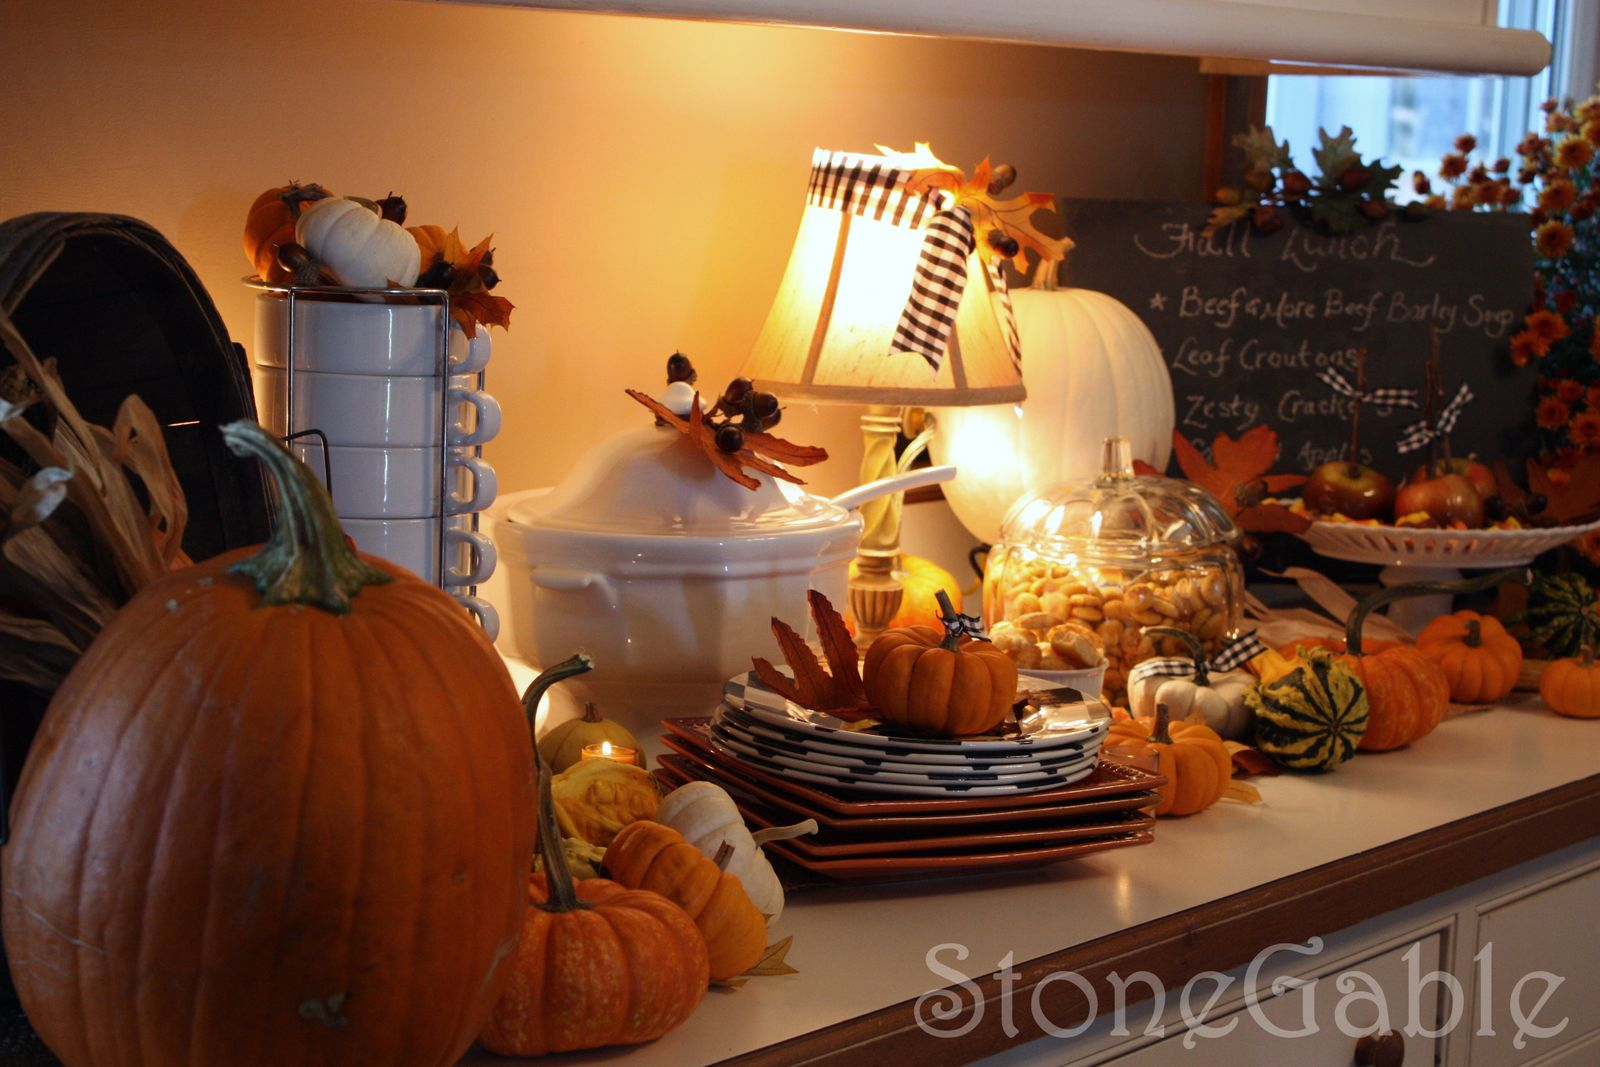 Kitchen Counter With Food kitchen counter soup buffet - stonegable